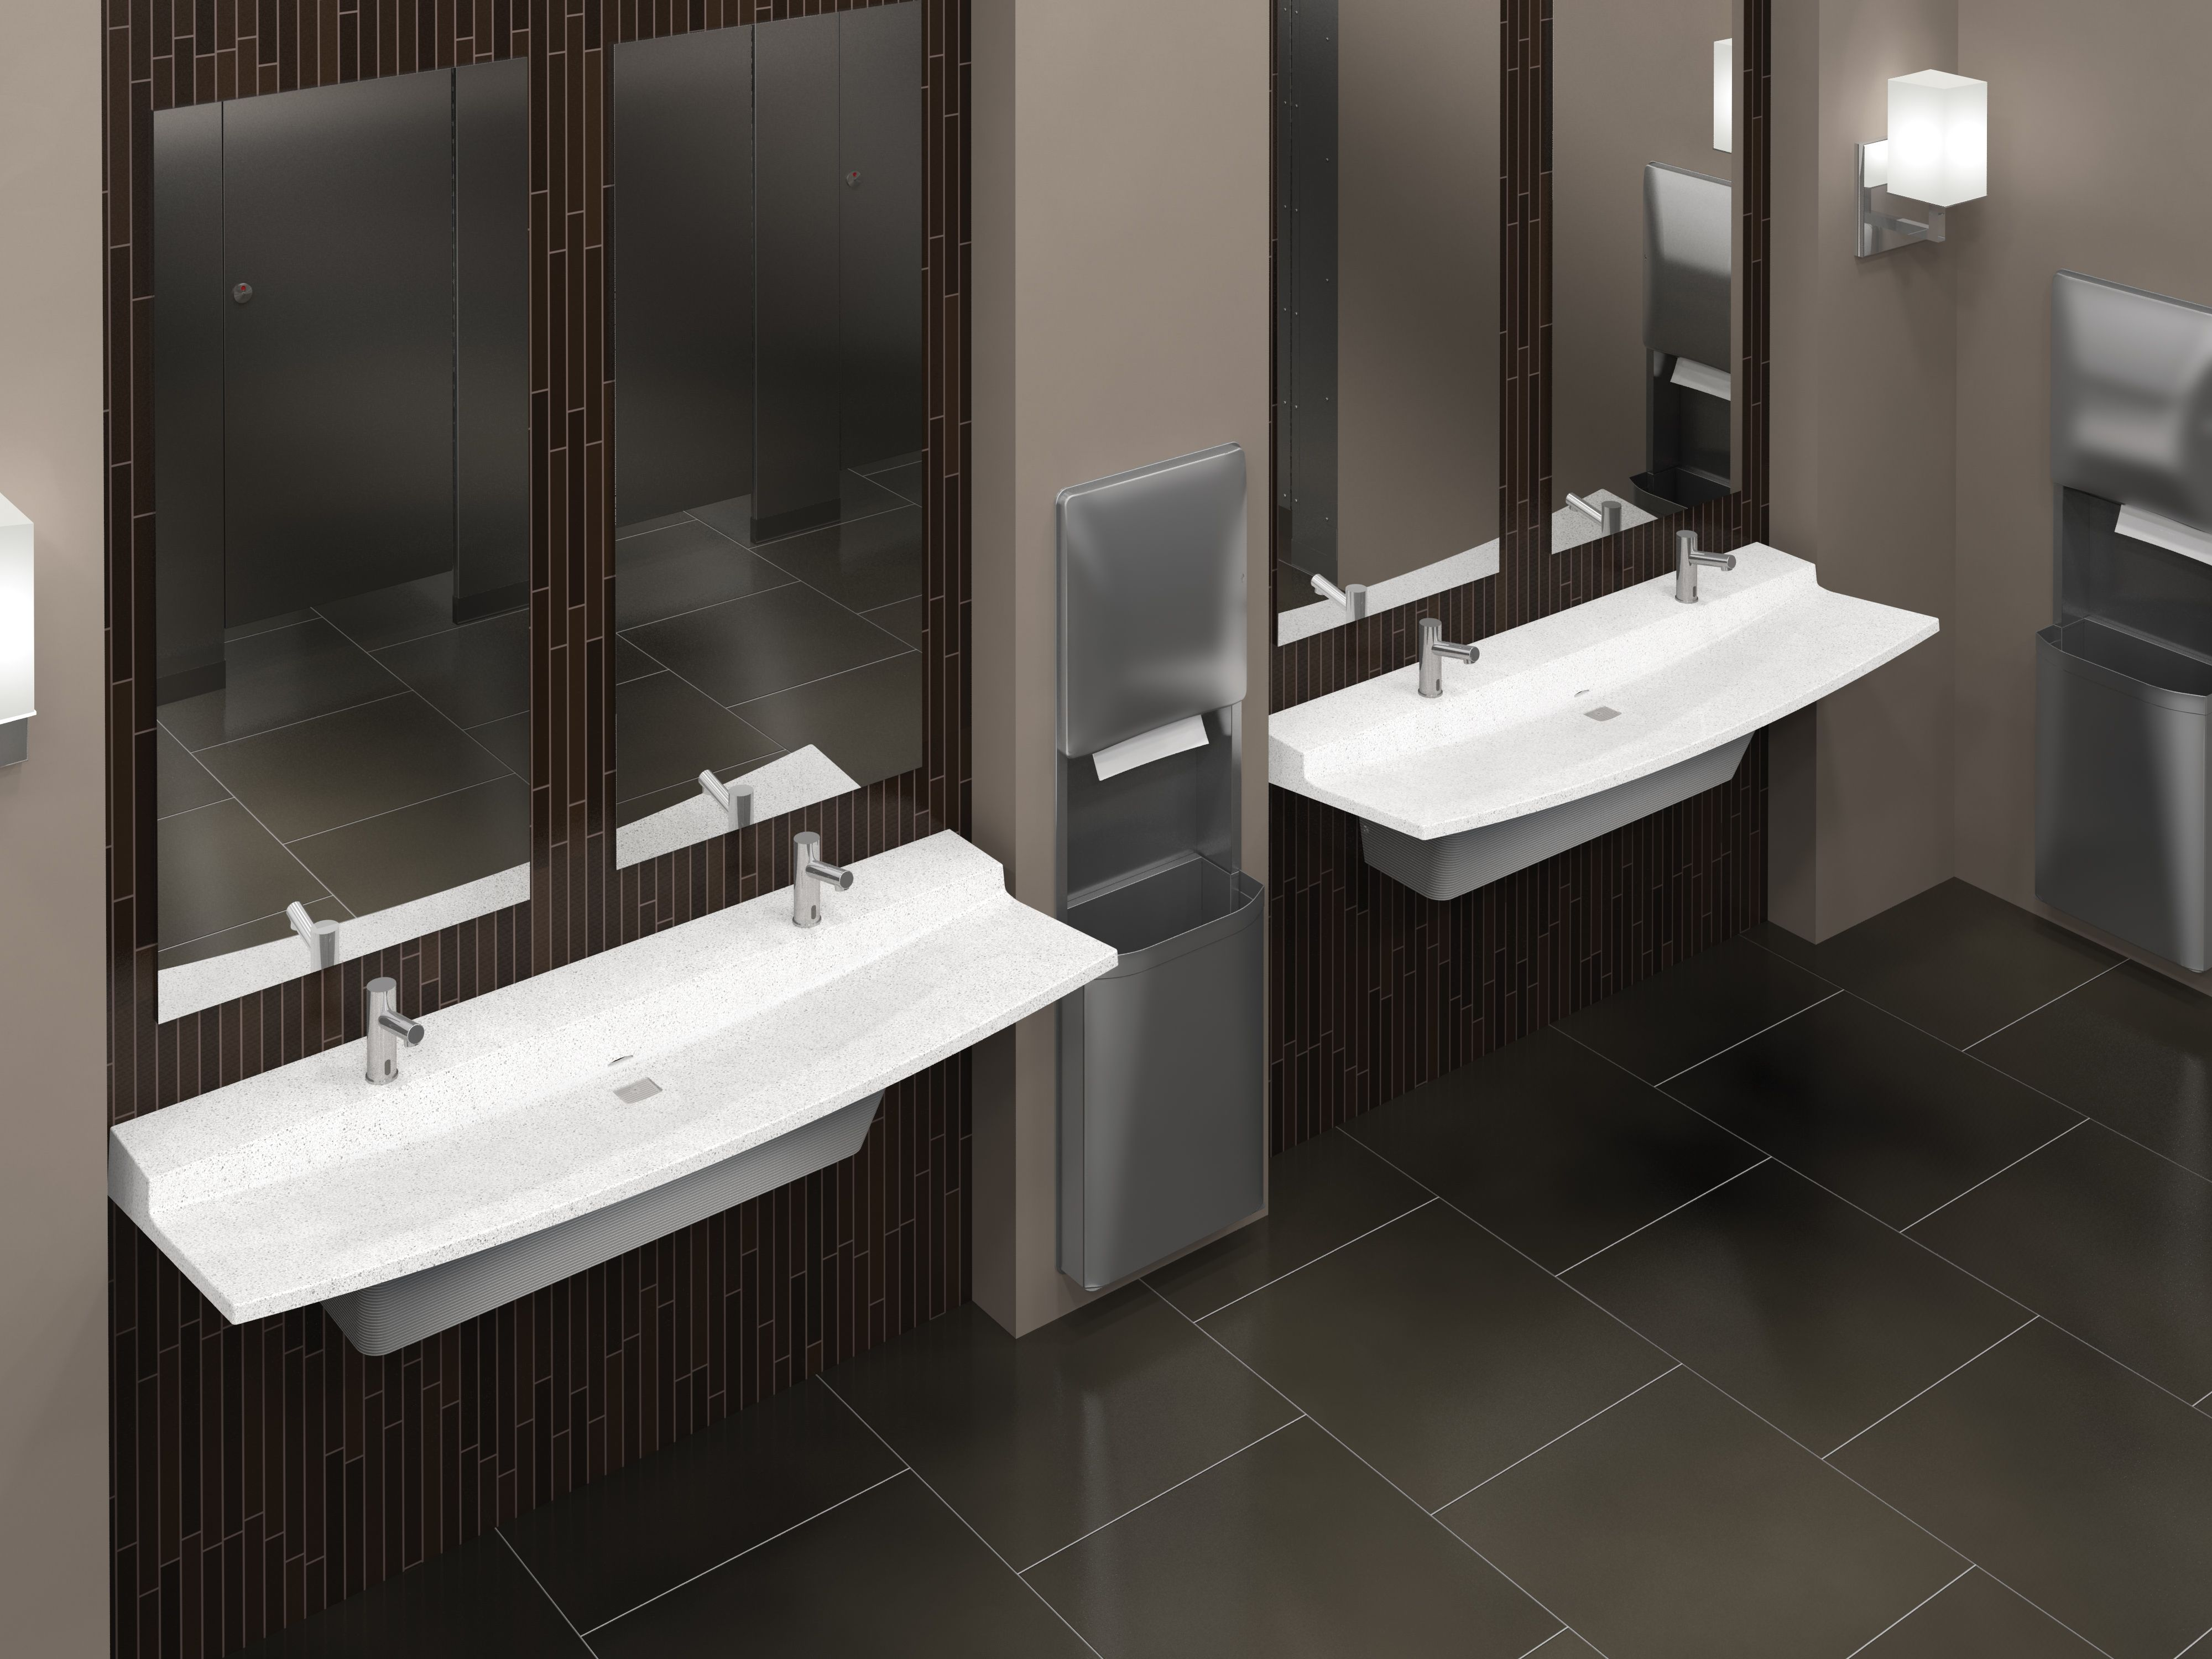 Dark And Light Restroom Featuring Two Station Verge LSeries - Business bathroom supplies